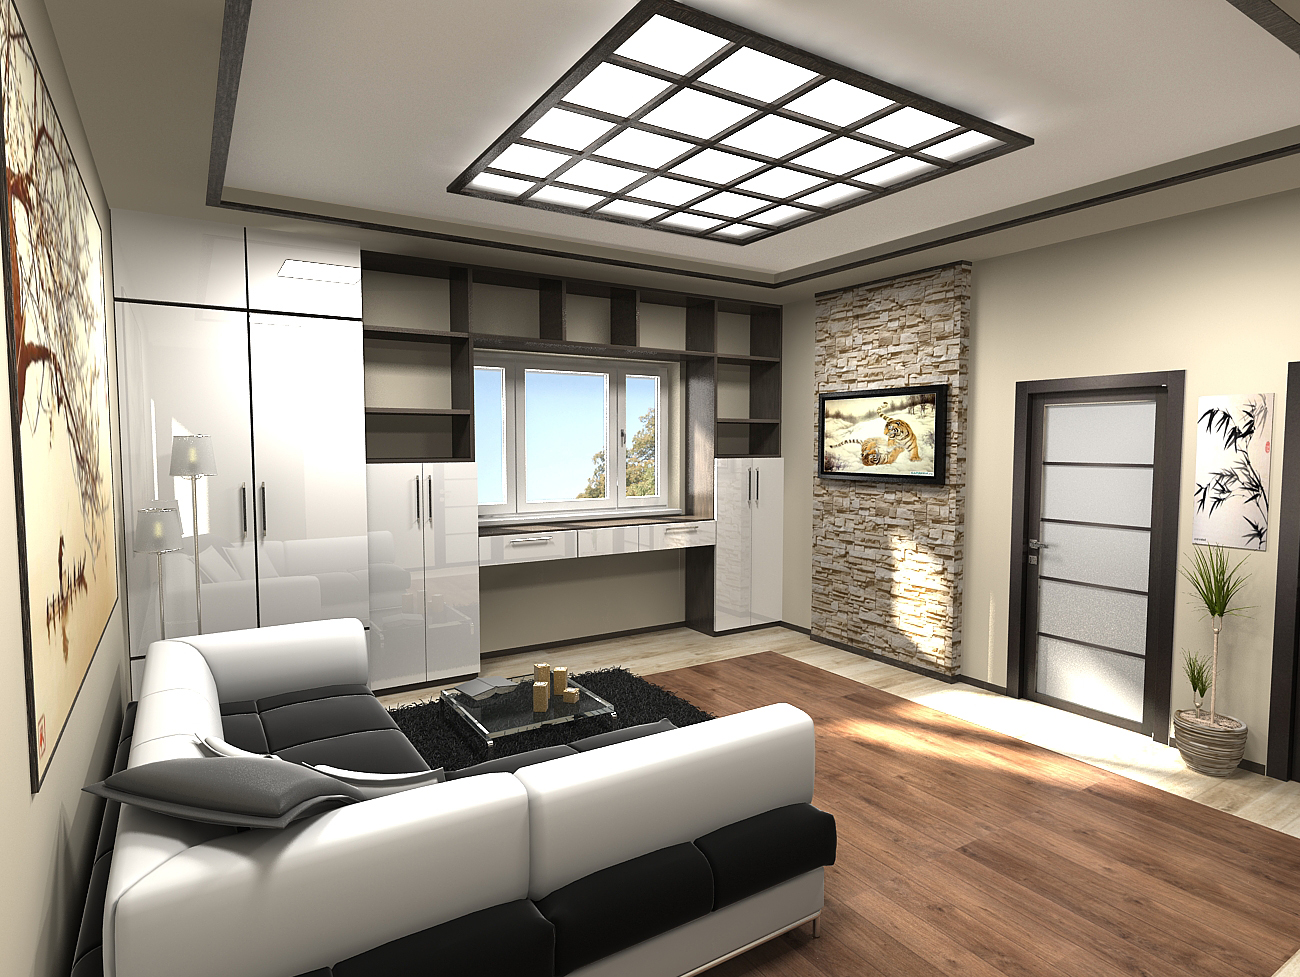 How to find a perfect interior designer 5 tips for How to find a interior designer